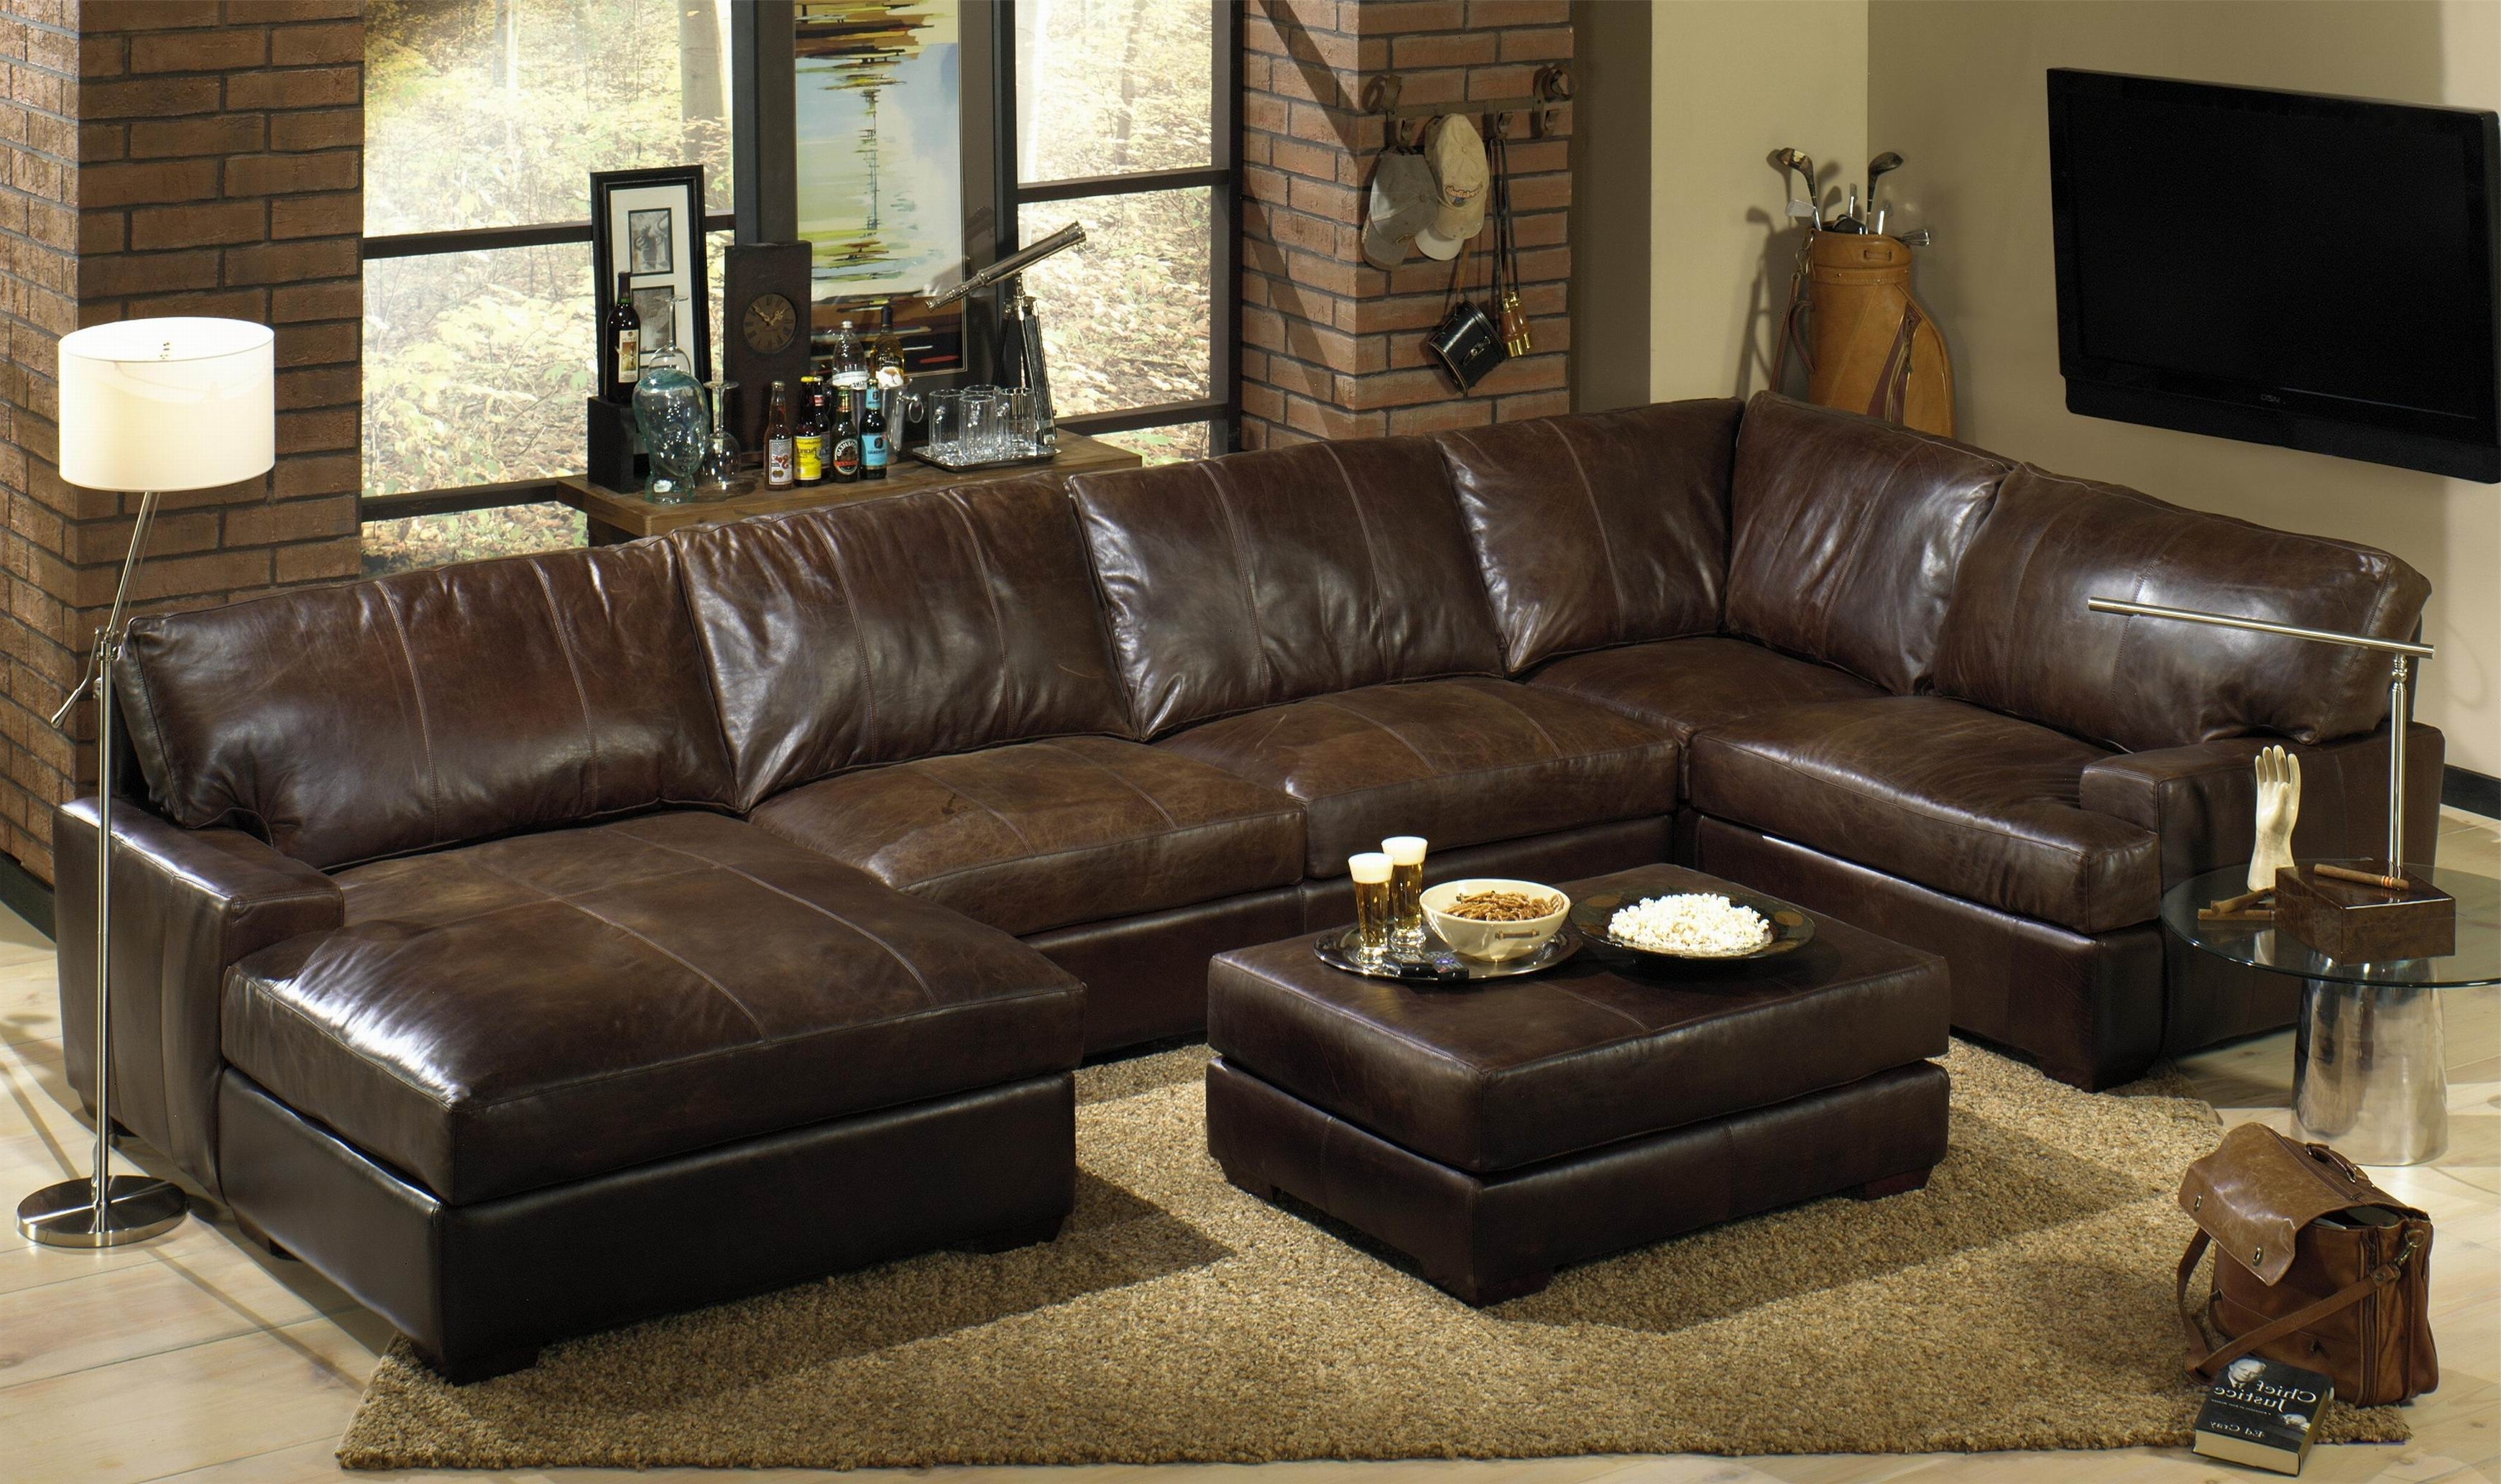 Vogue Bonded Leather Reversible Chaise Sectional Sofa Brown With inside Most Current Leather Sectionals With Chaise And Ottoman